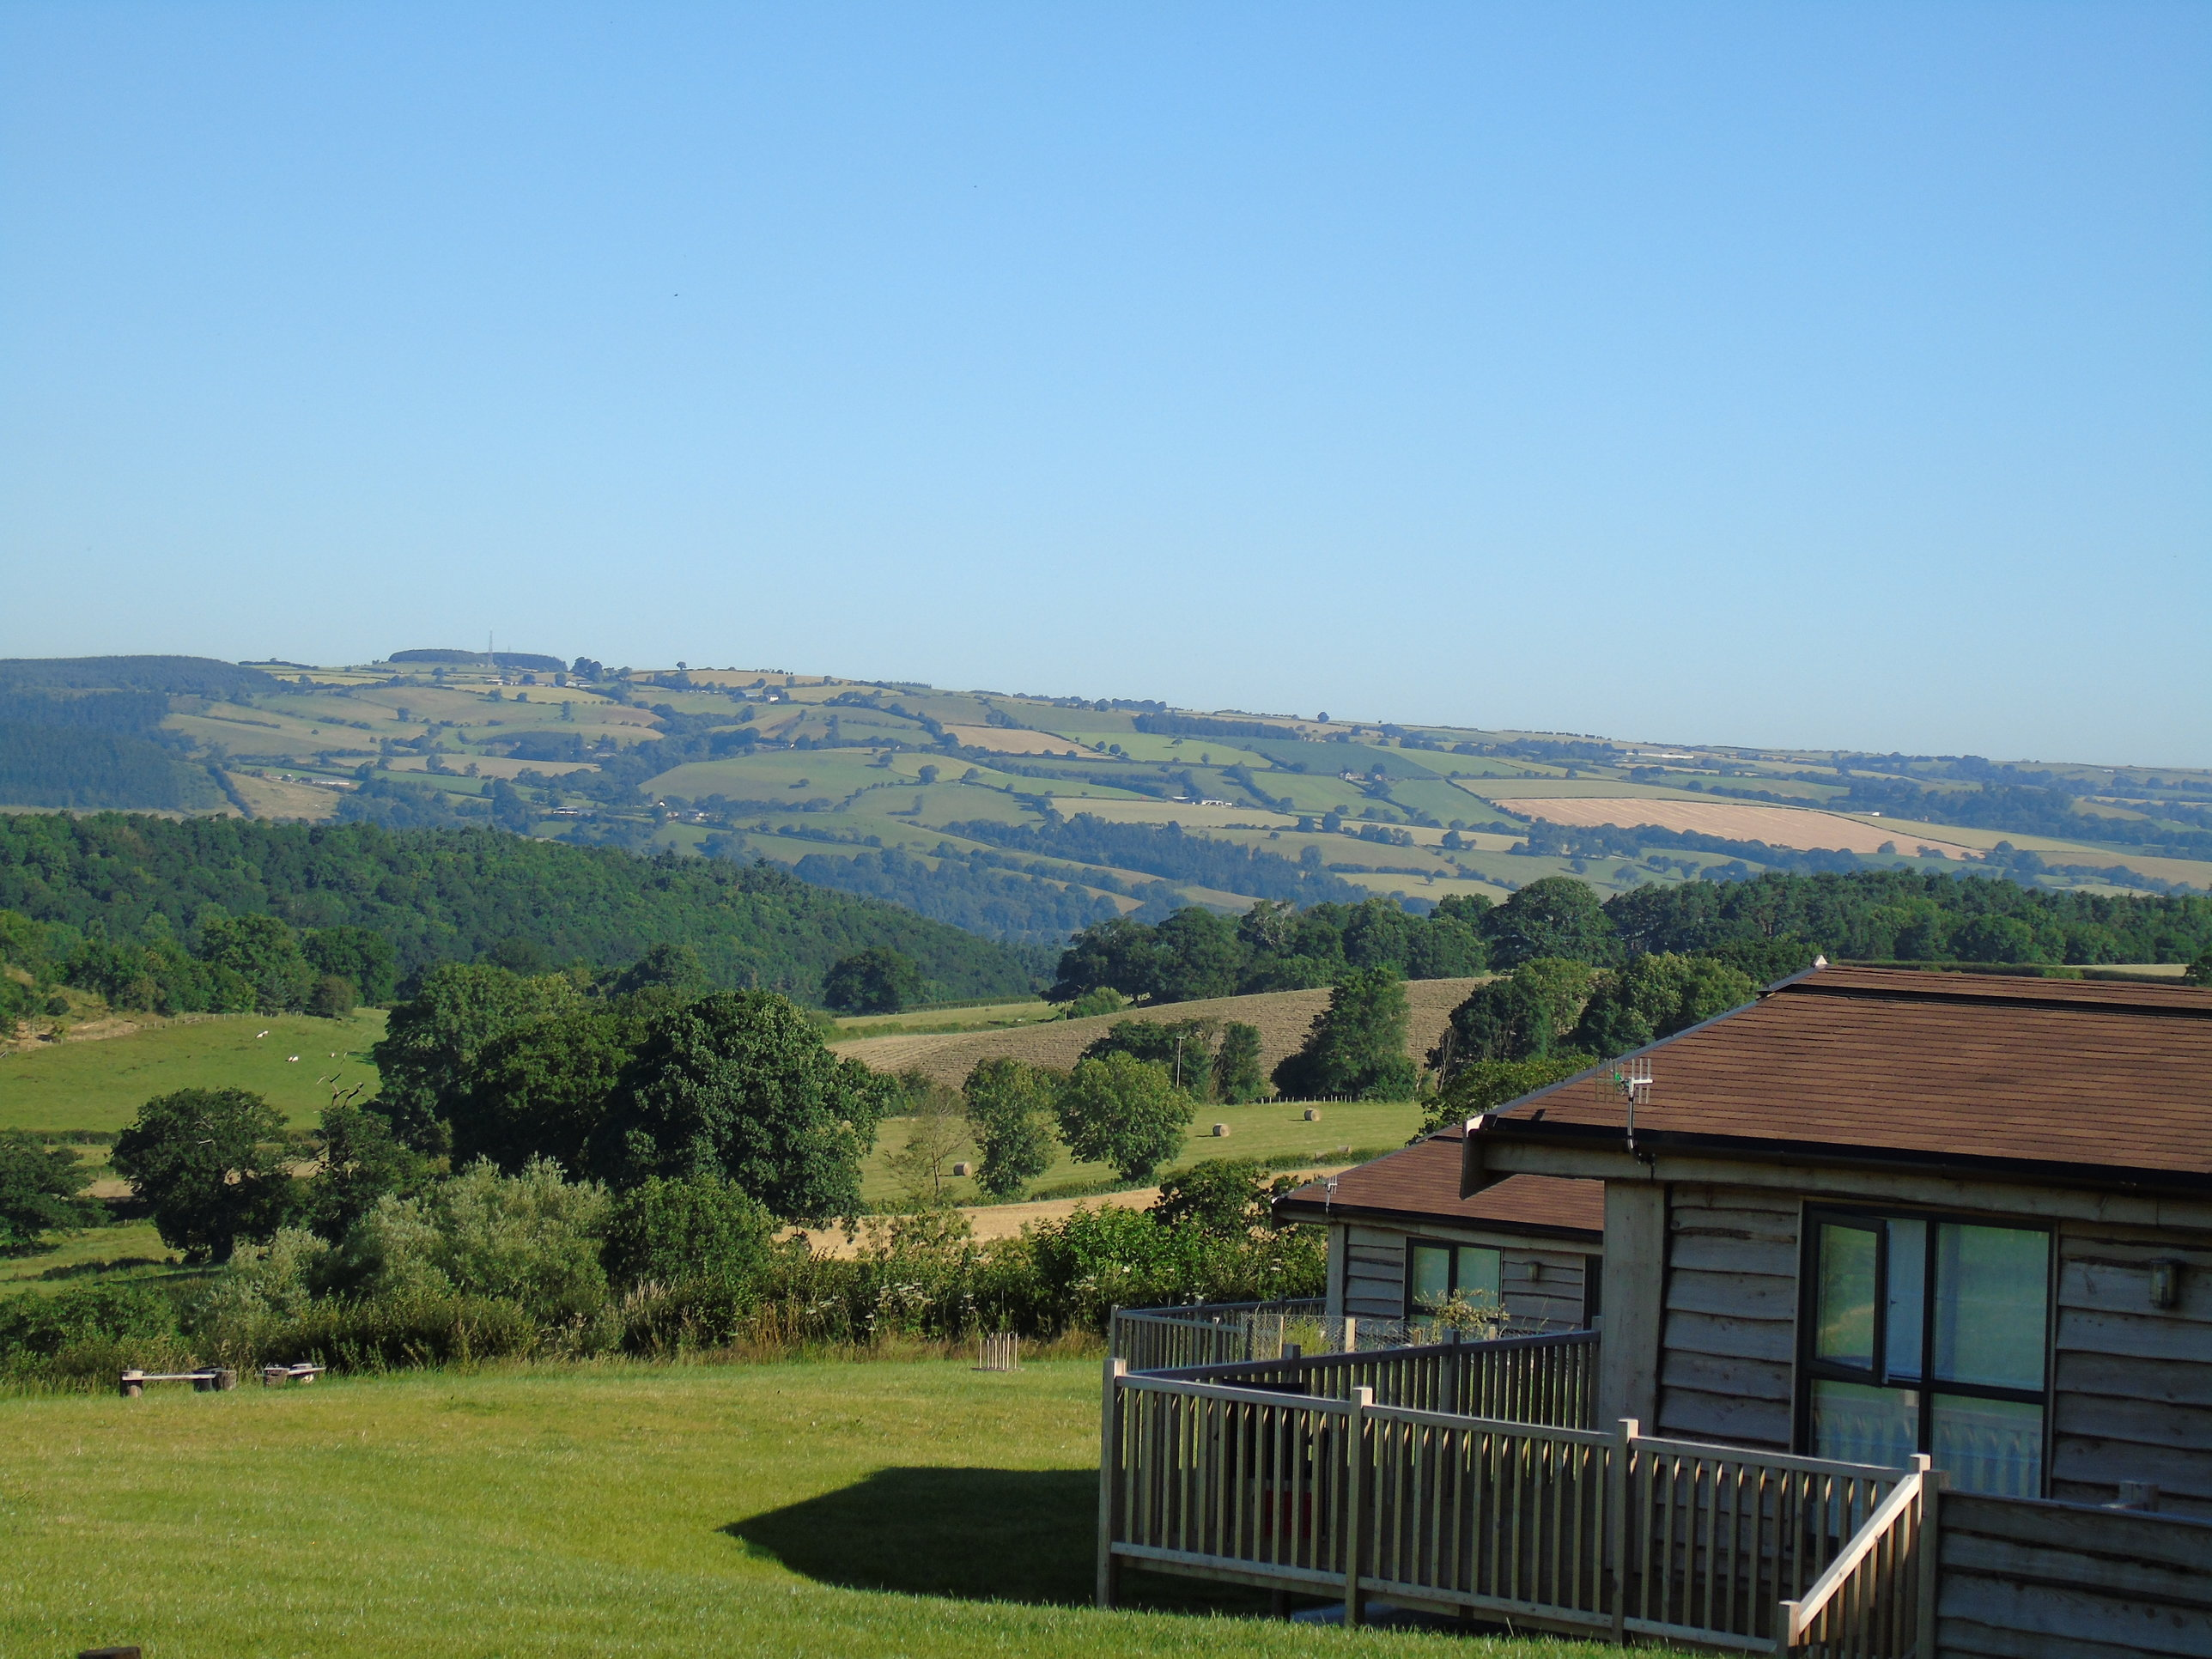 Accommodation with a large bed sleeps 2 in Heart of England, West Midlands, Shropshire Hills